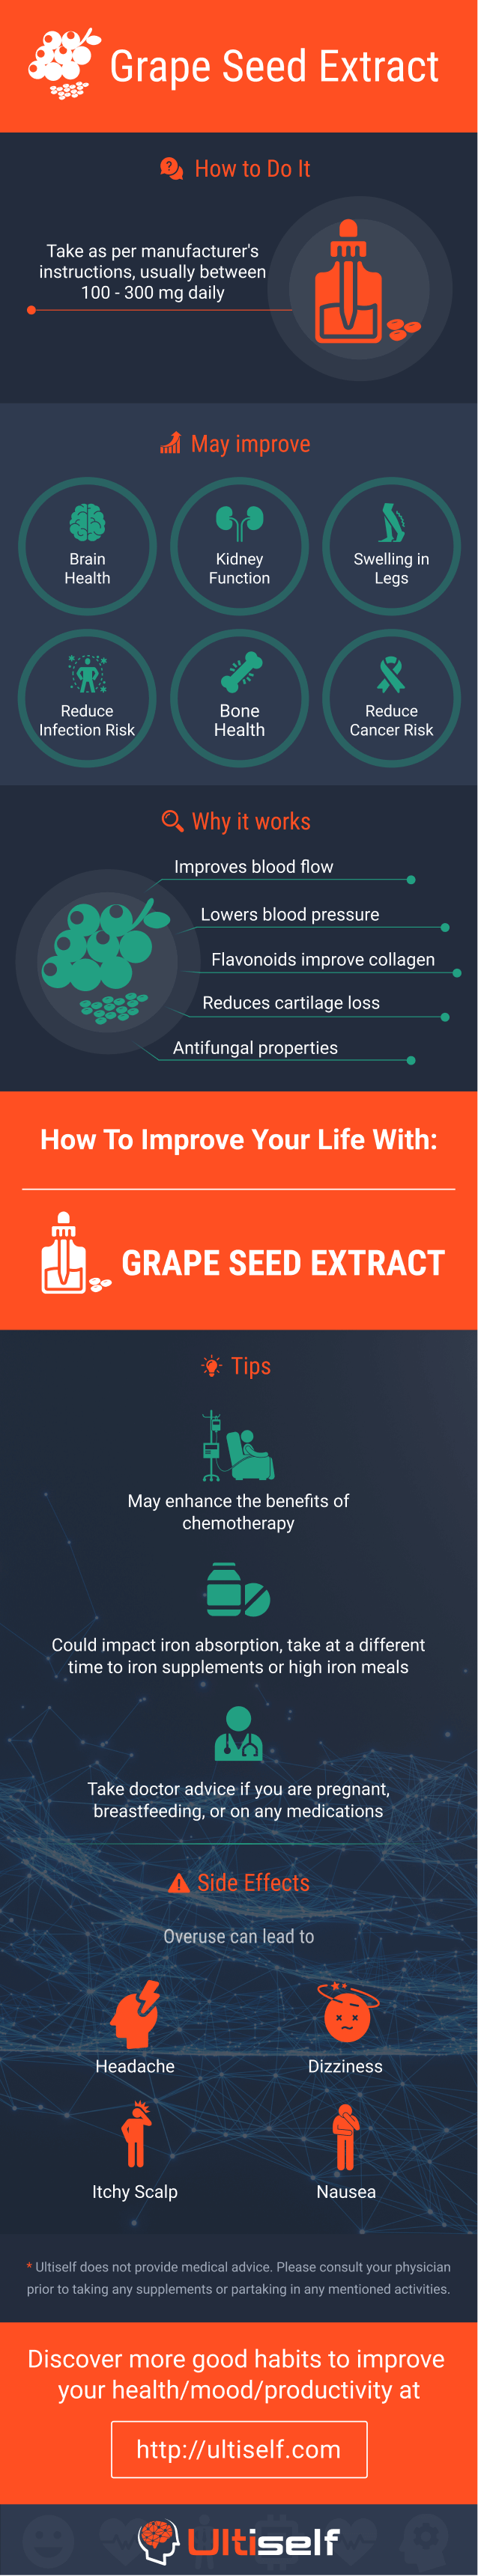 Grape Seed Extract infographic